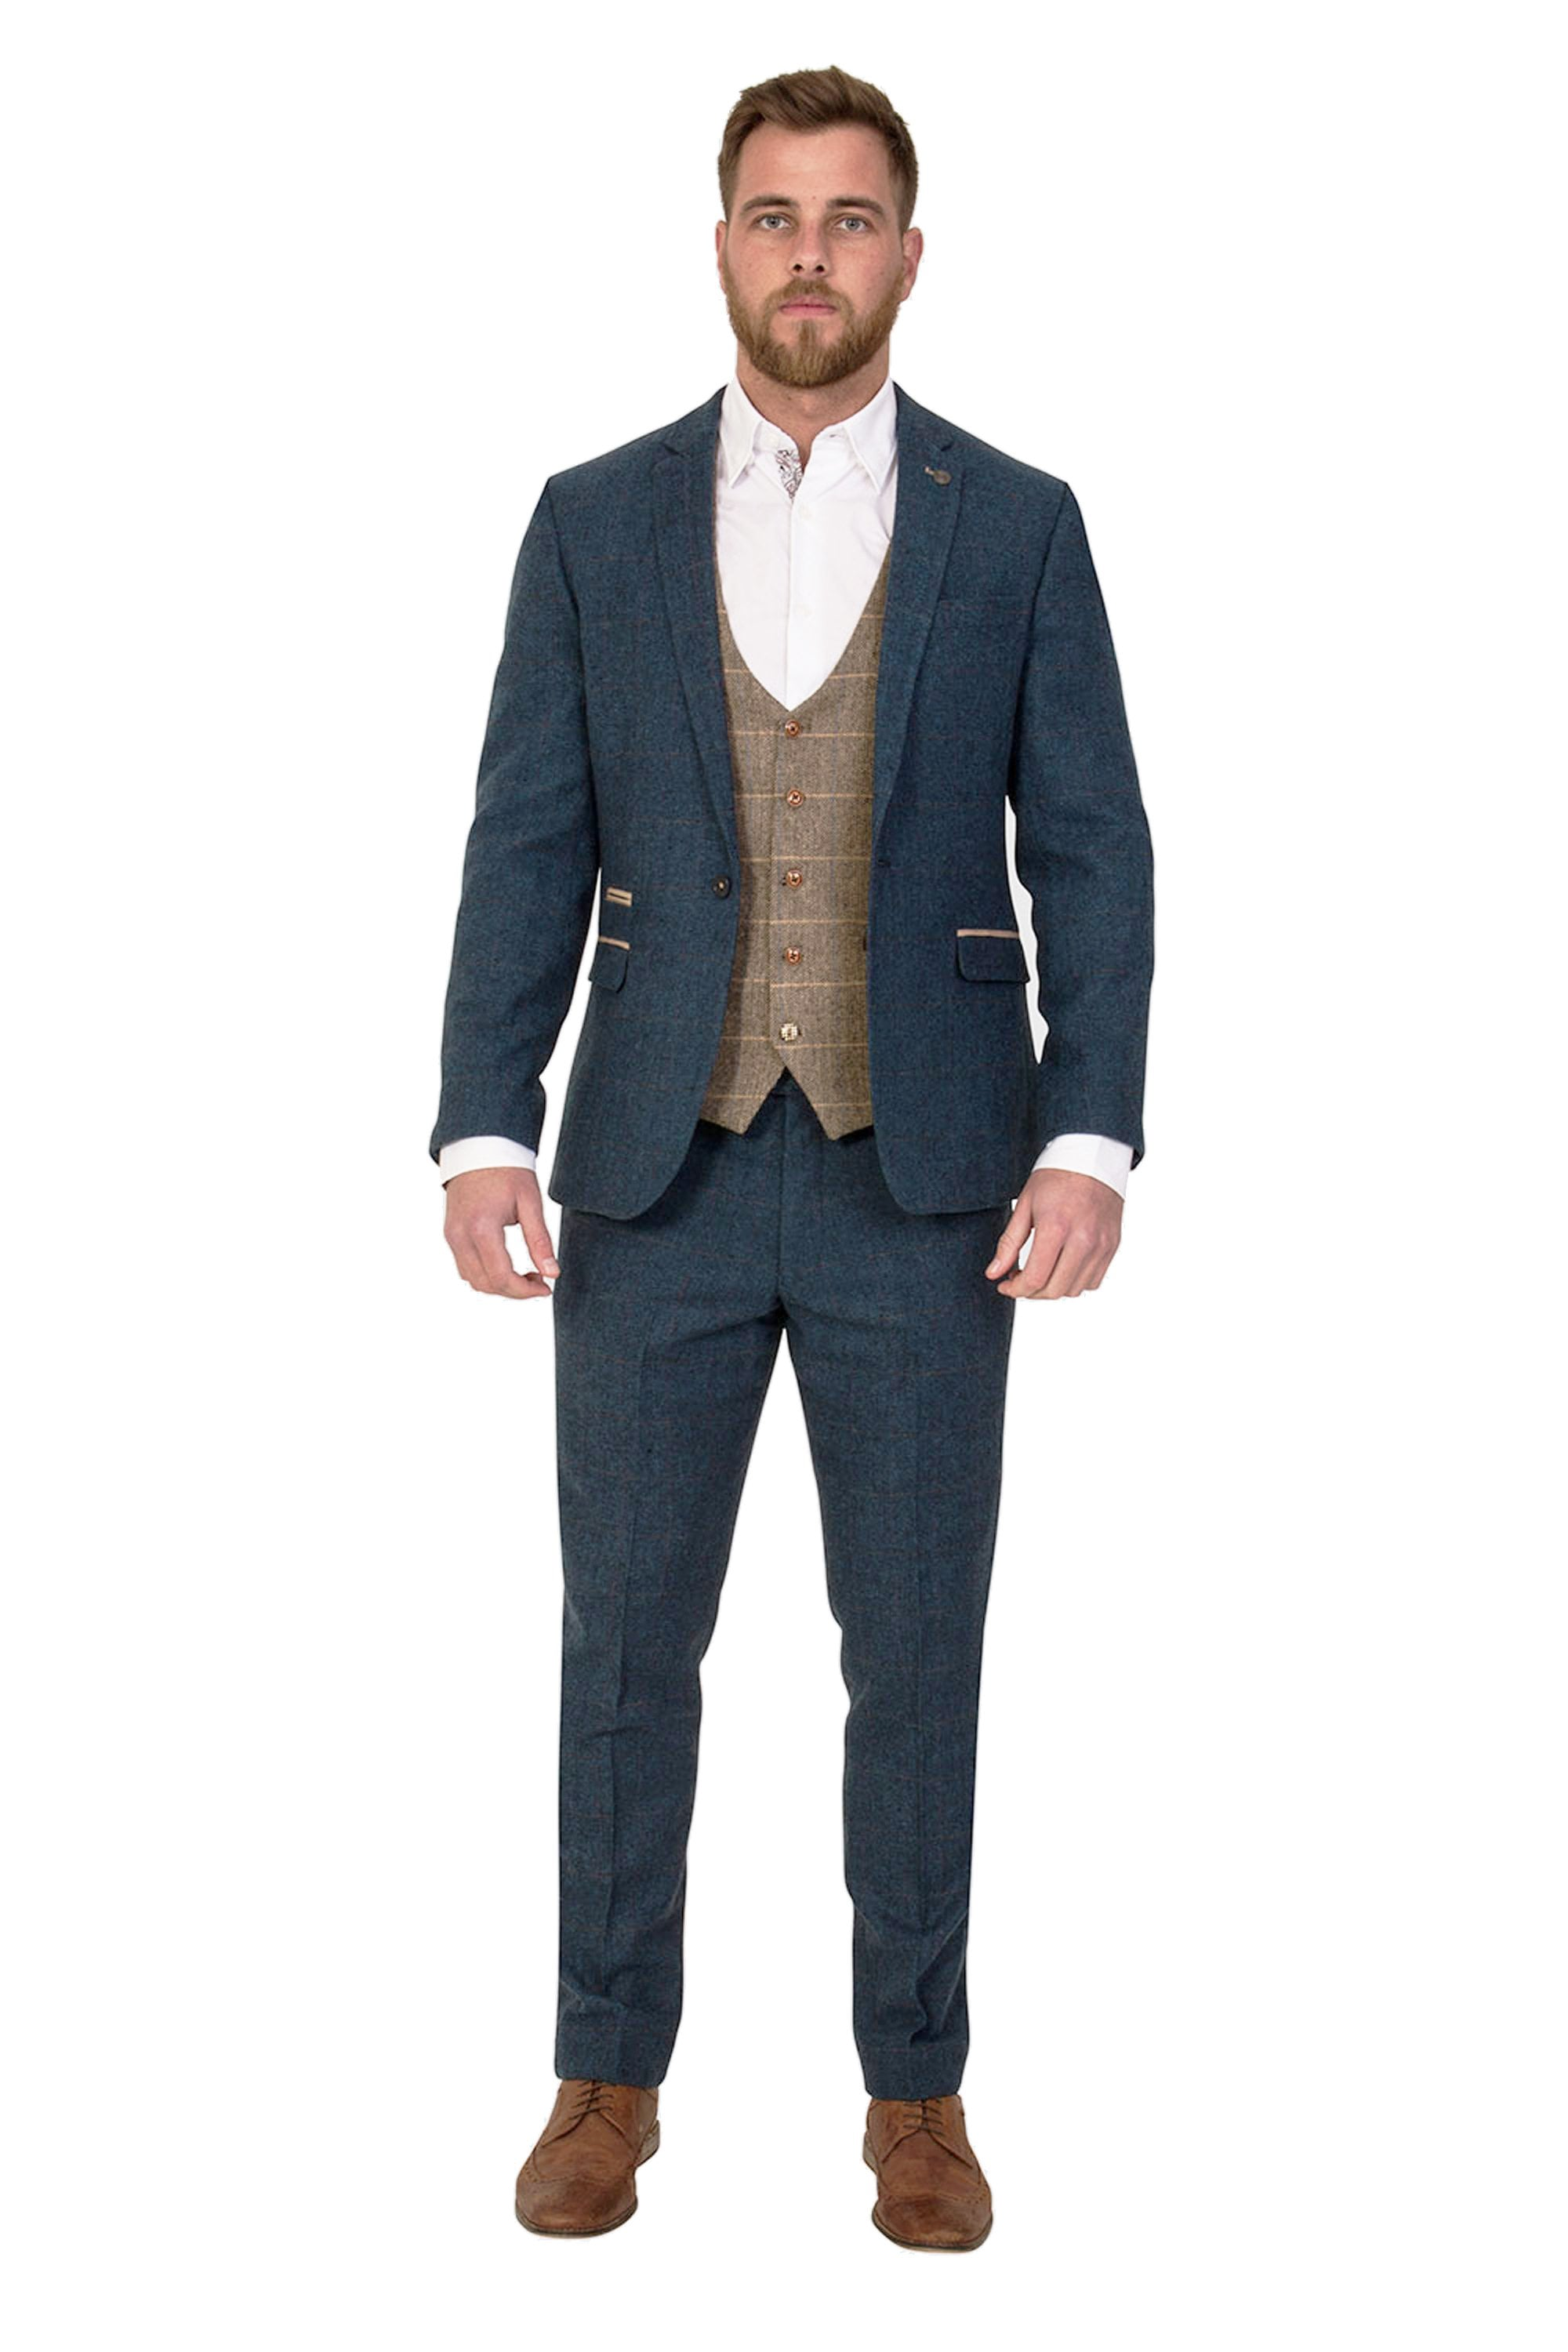 8e4ef3cb6cd9 Marc Darcy Dion Blue Vintage three piece Tweed Suit with Ted Waistcoat  Bundle